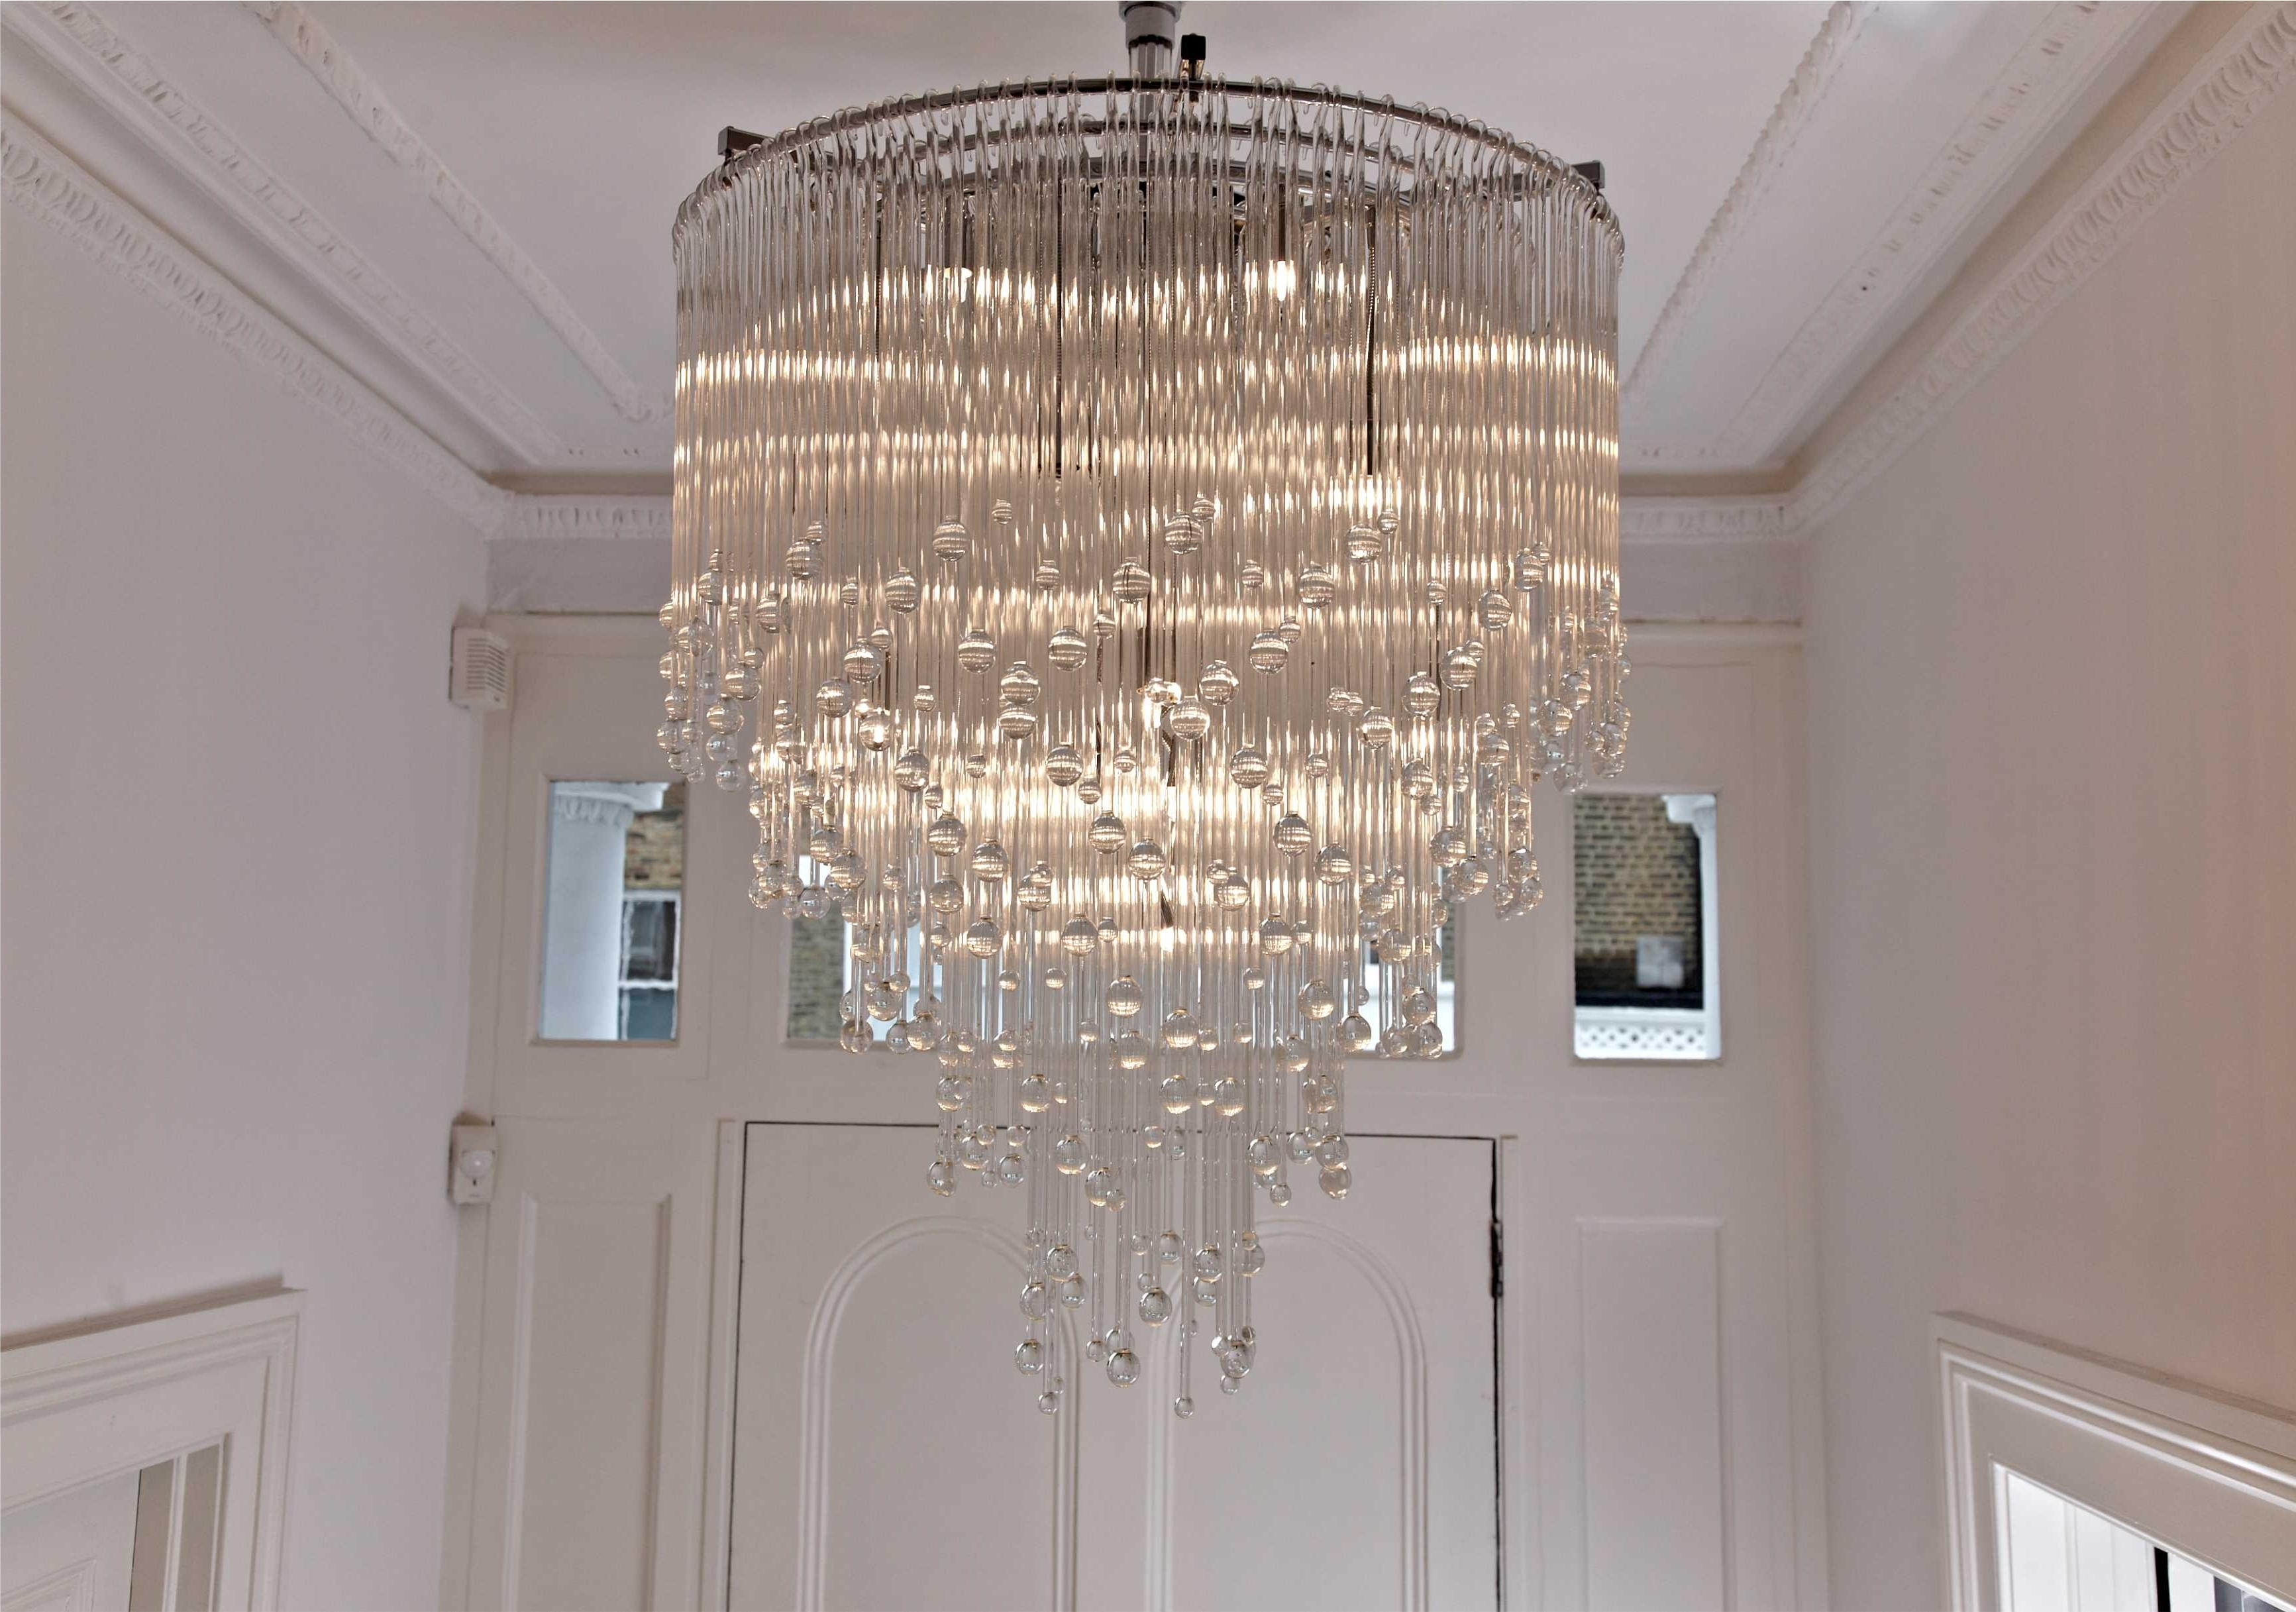 Contemporary Large Chandeliers With Regard To Most Recently Released Contemporary Bathroom Chandeliers On With Hd Resolution 3466X (View 3 of 15)